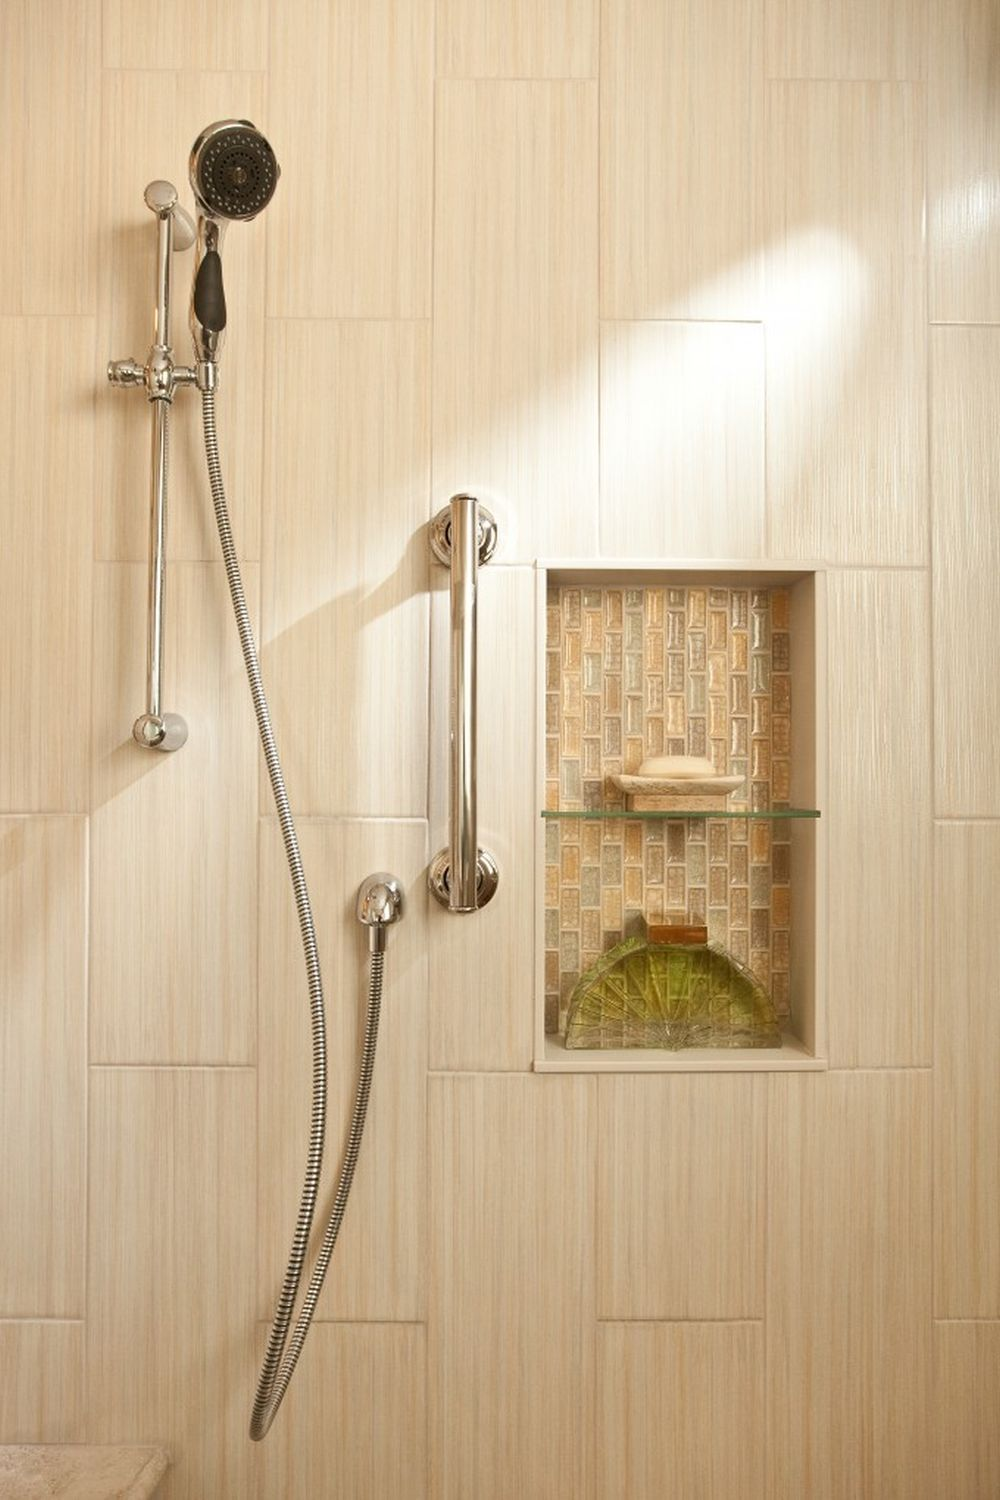 shower grab bar placement diagram how to install bathroom safety bars in your house